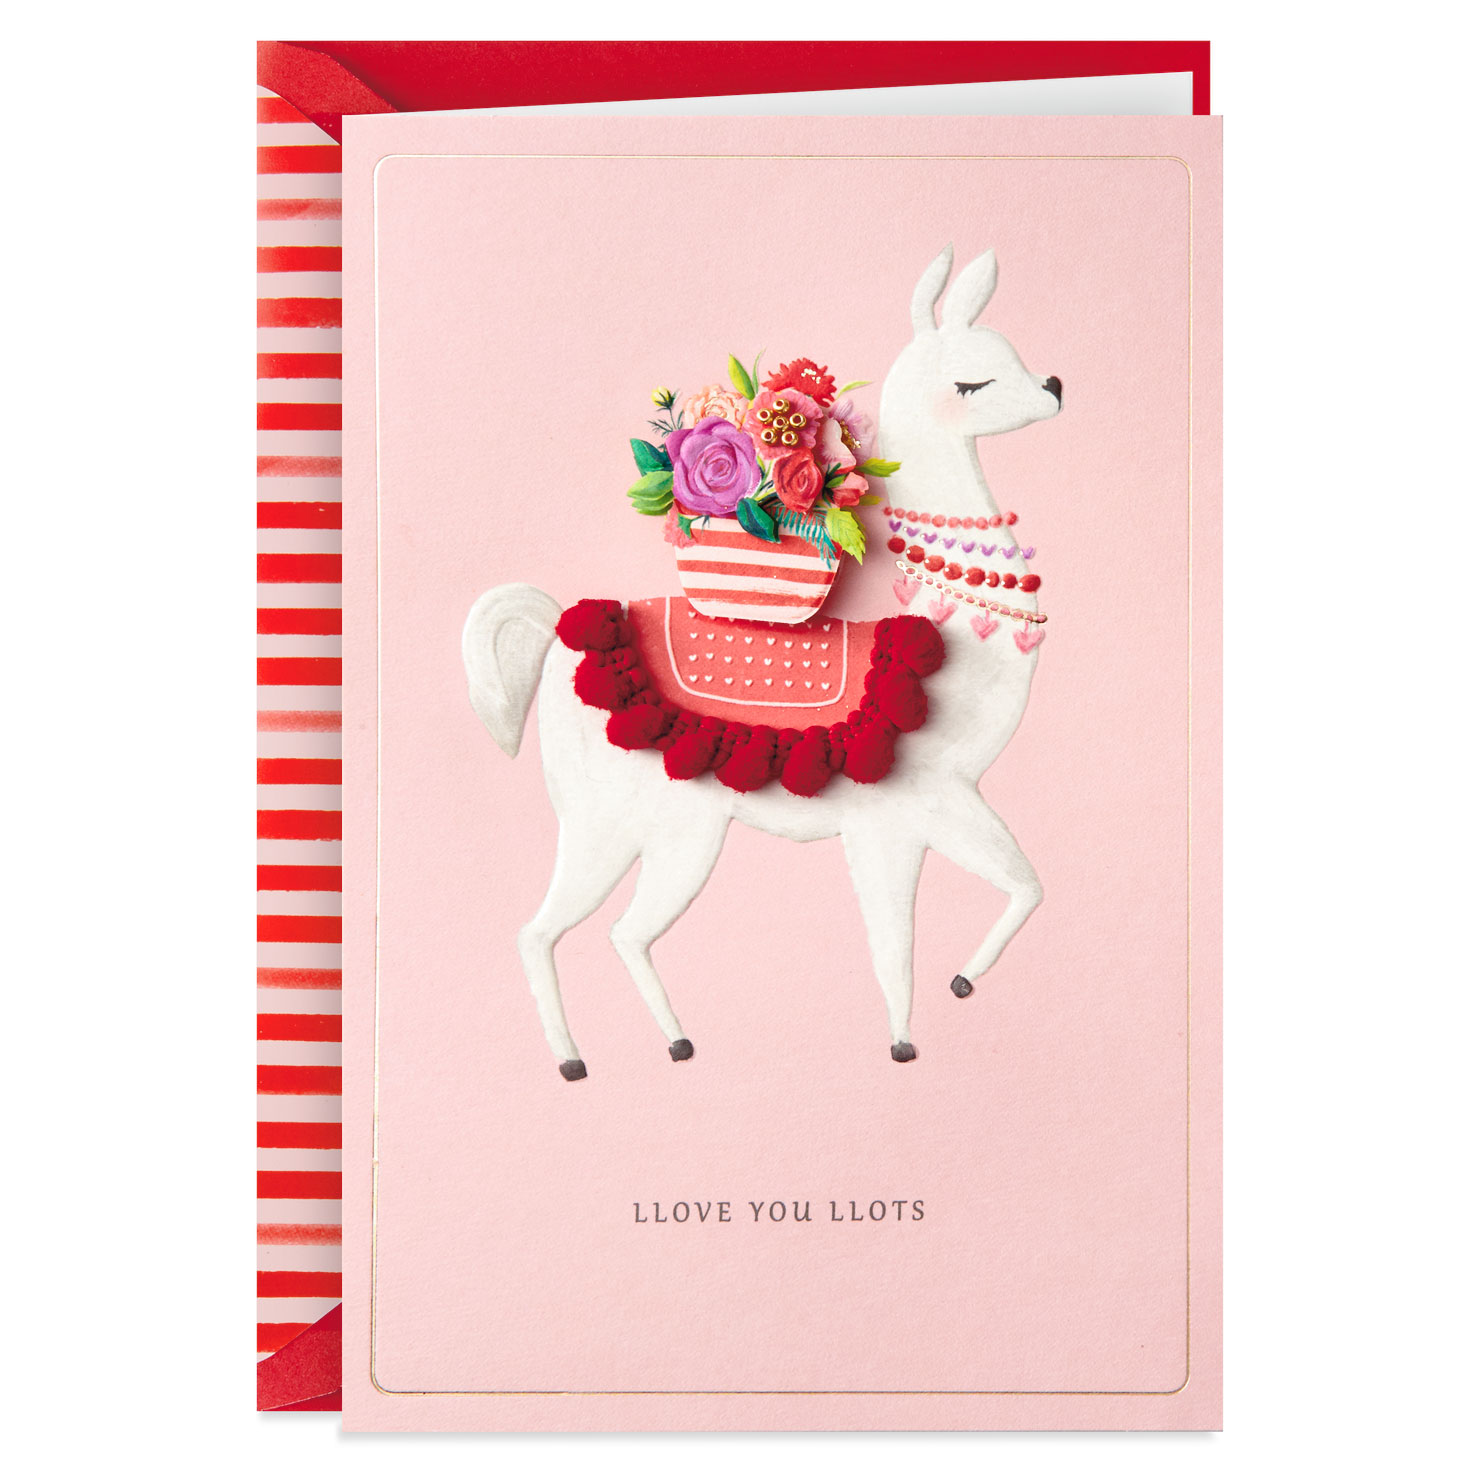 llama love you llots valentine's day card  greeting cards